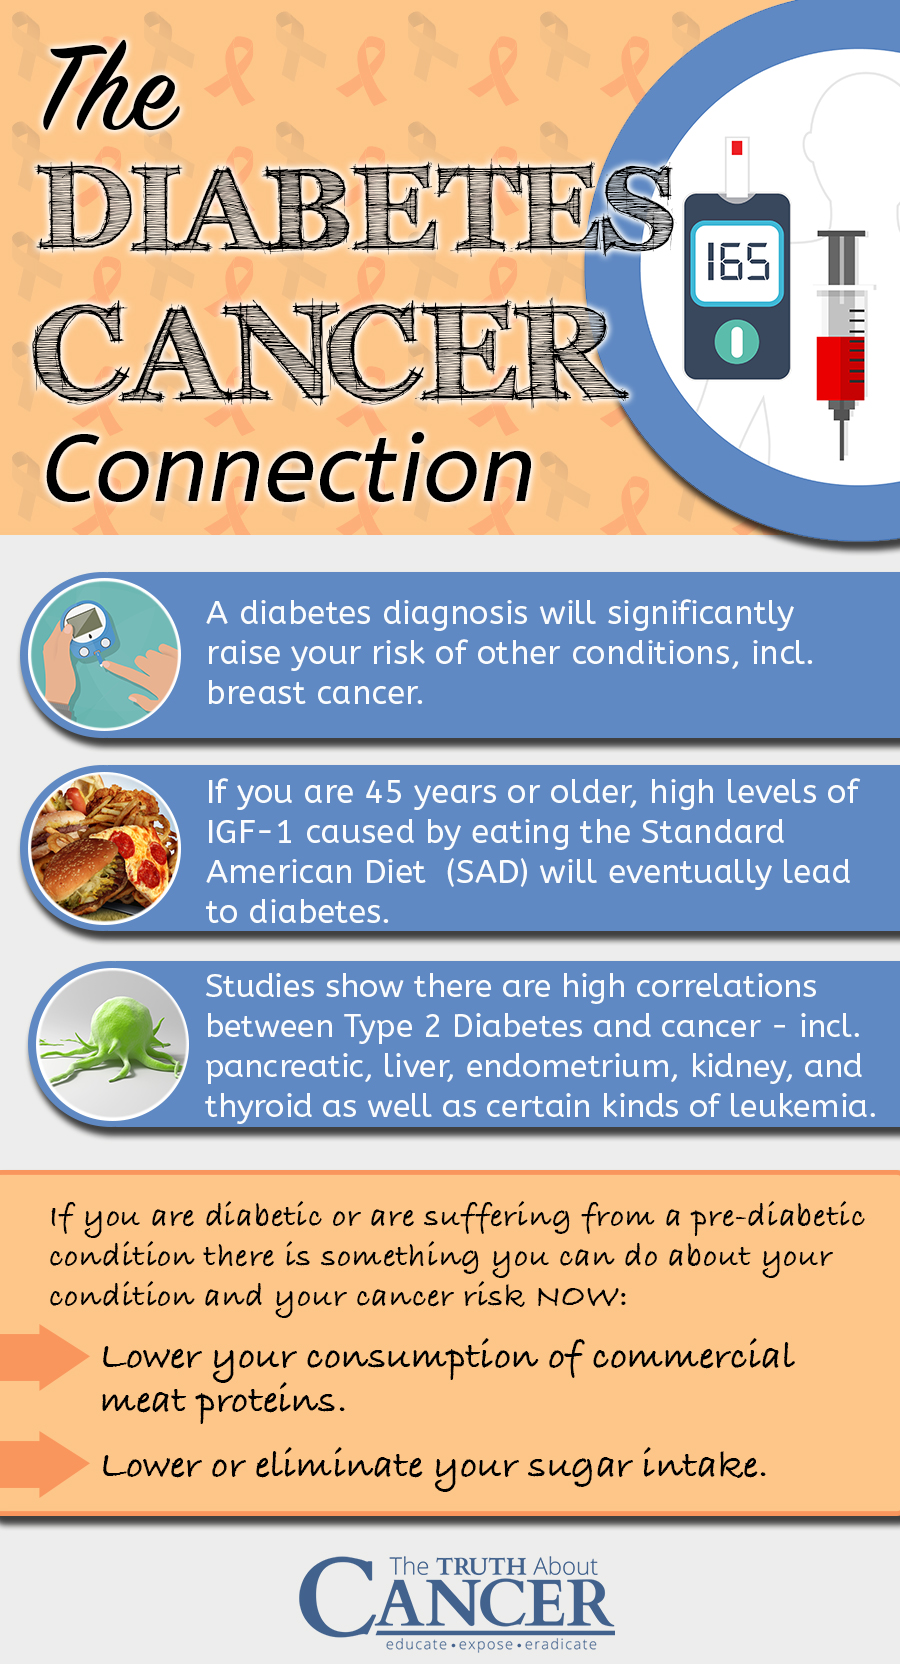 diabetes-cancer-connection